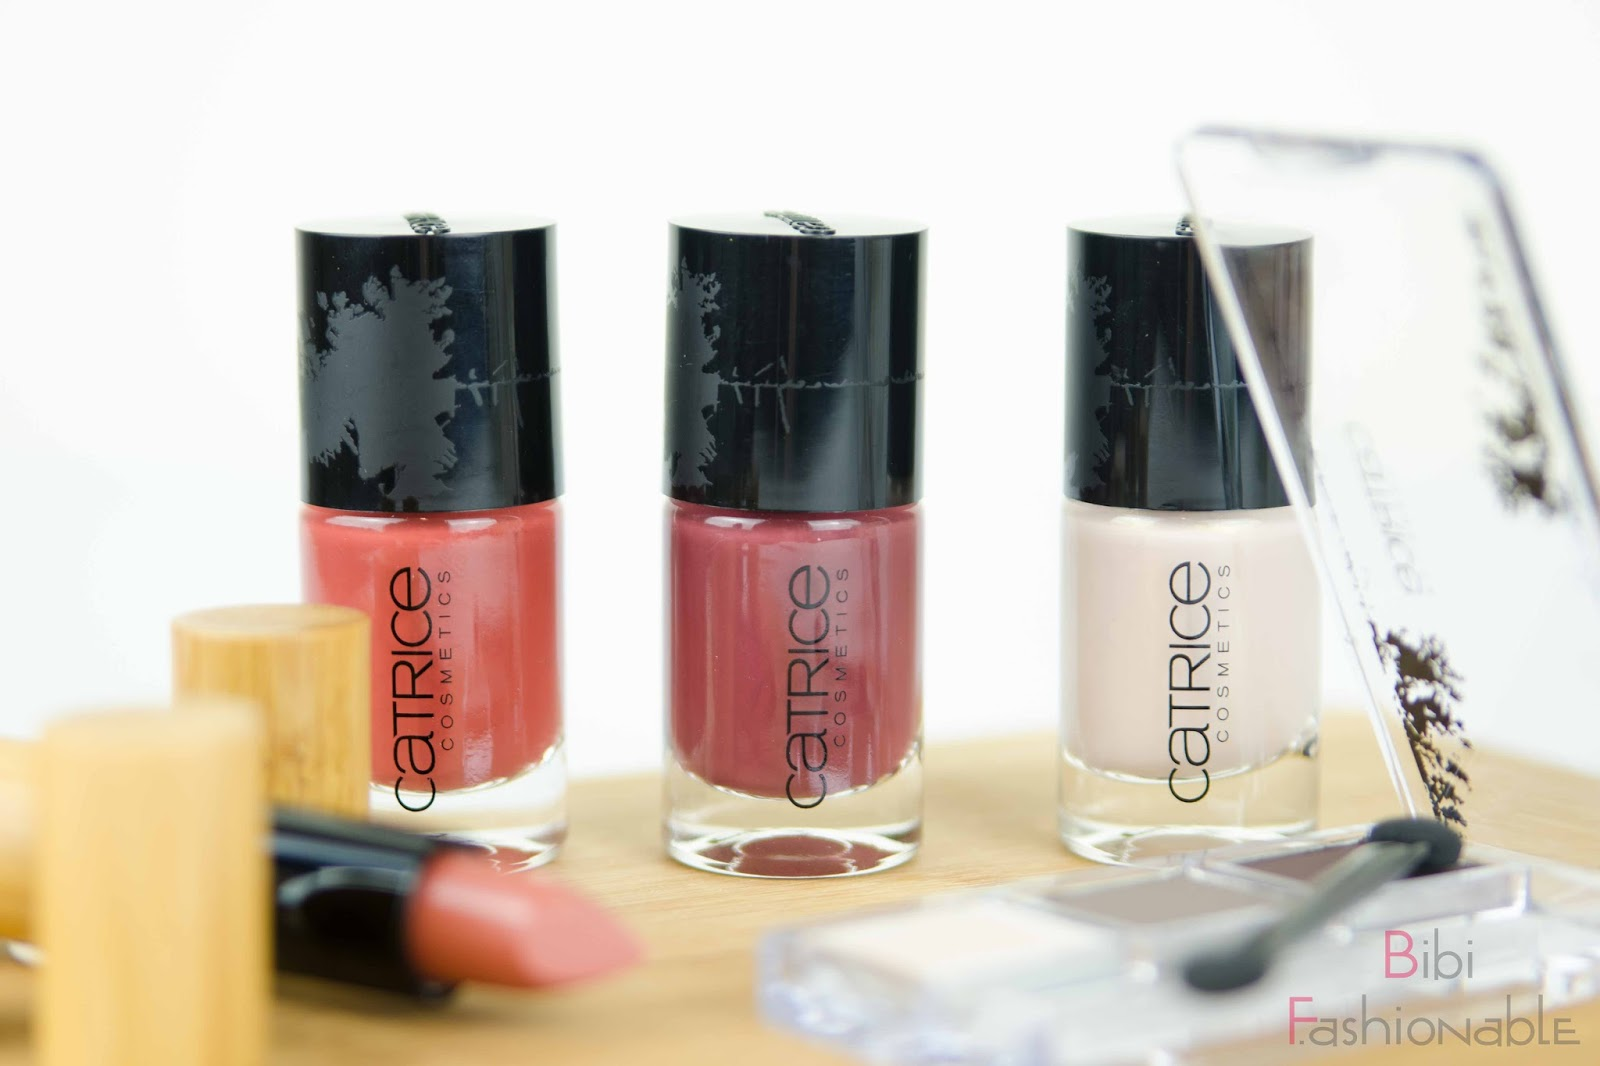 Catrice Limited Edition Neo-Natured Nail Laquer